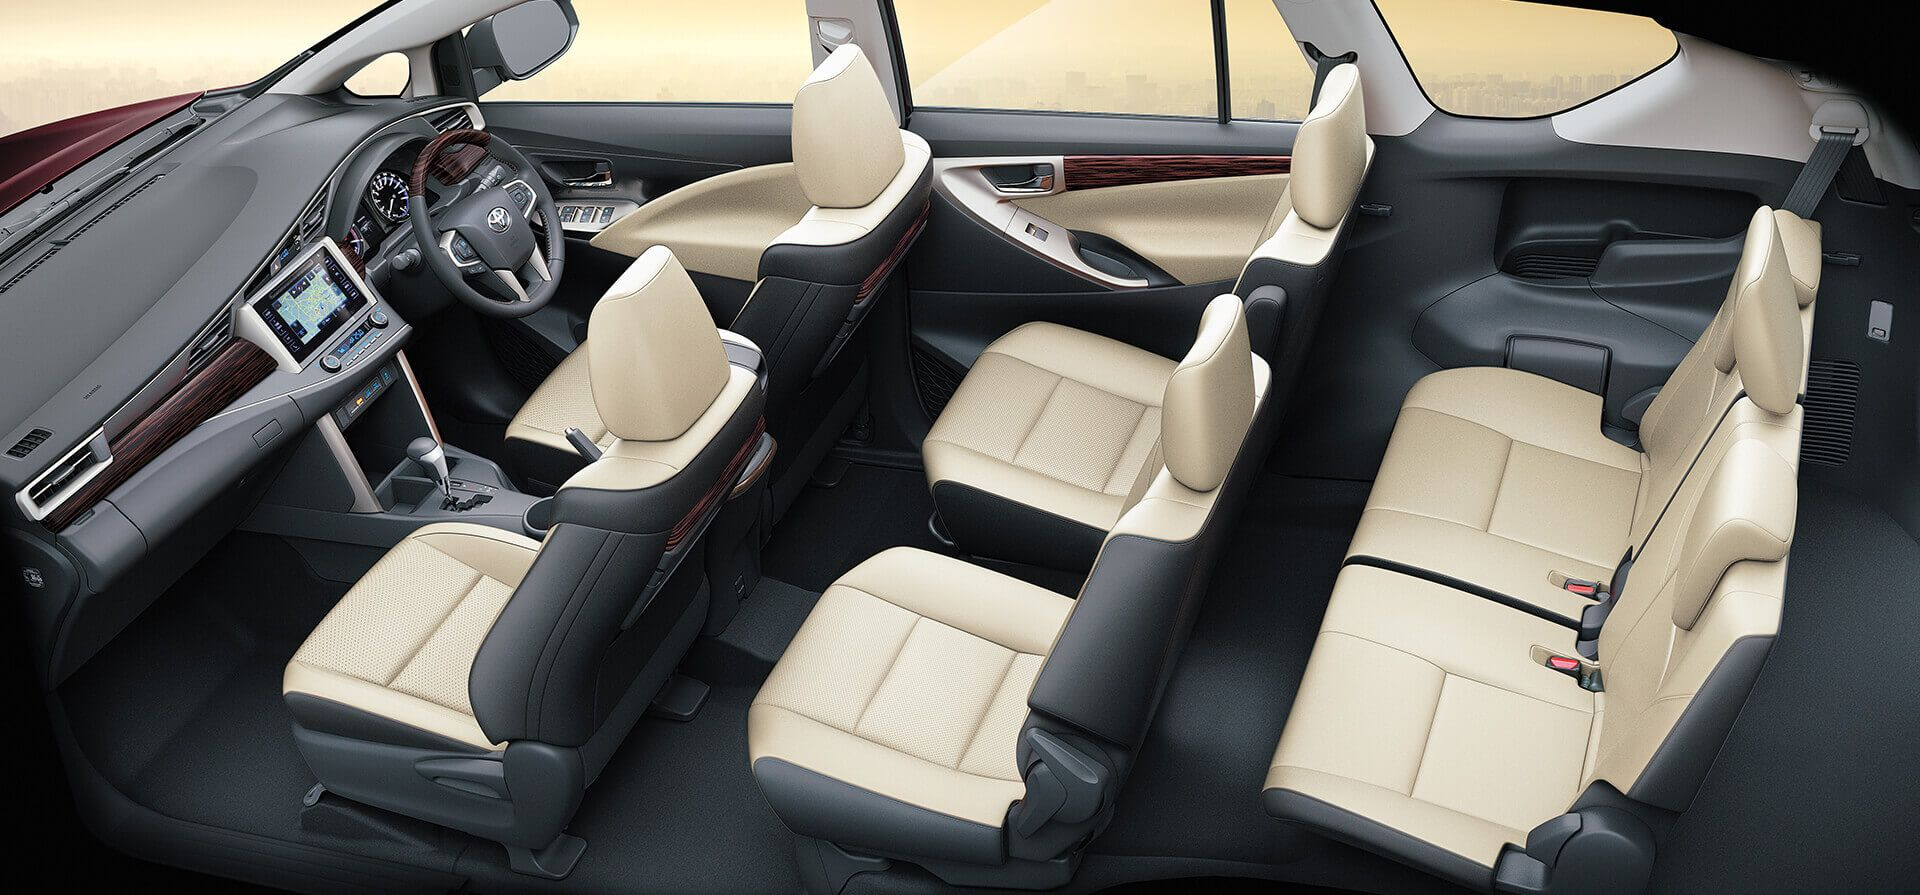 List Of Top 7 Seater Cars In India In 2020 Toyota Innova Toyota Car Buyer